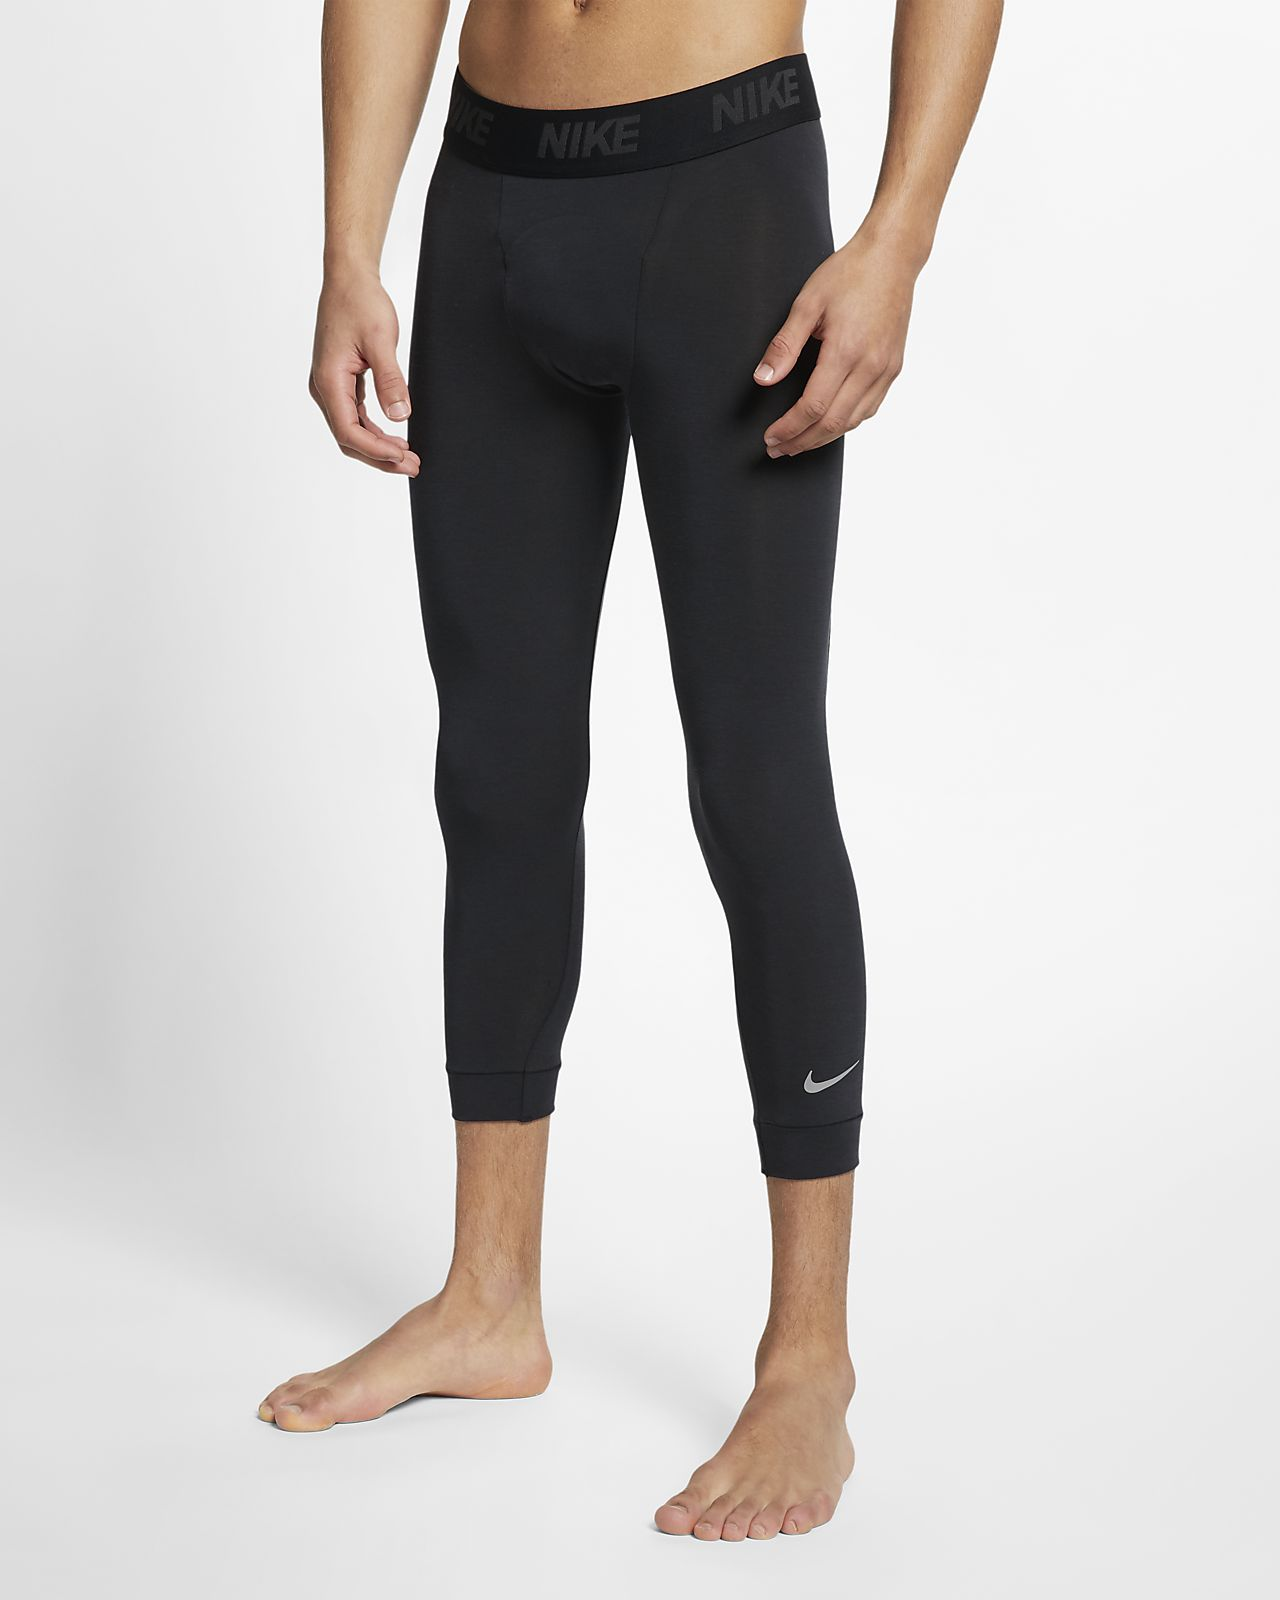 Nike Dri-FIT 3/4-Yoga-Trainingstights für Herren